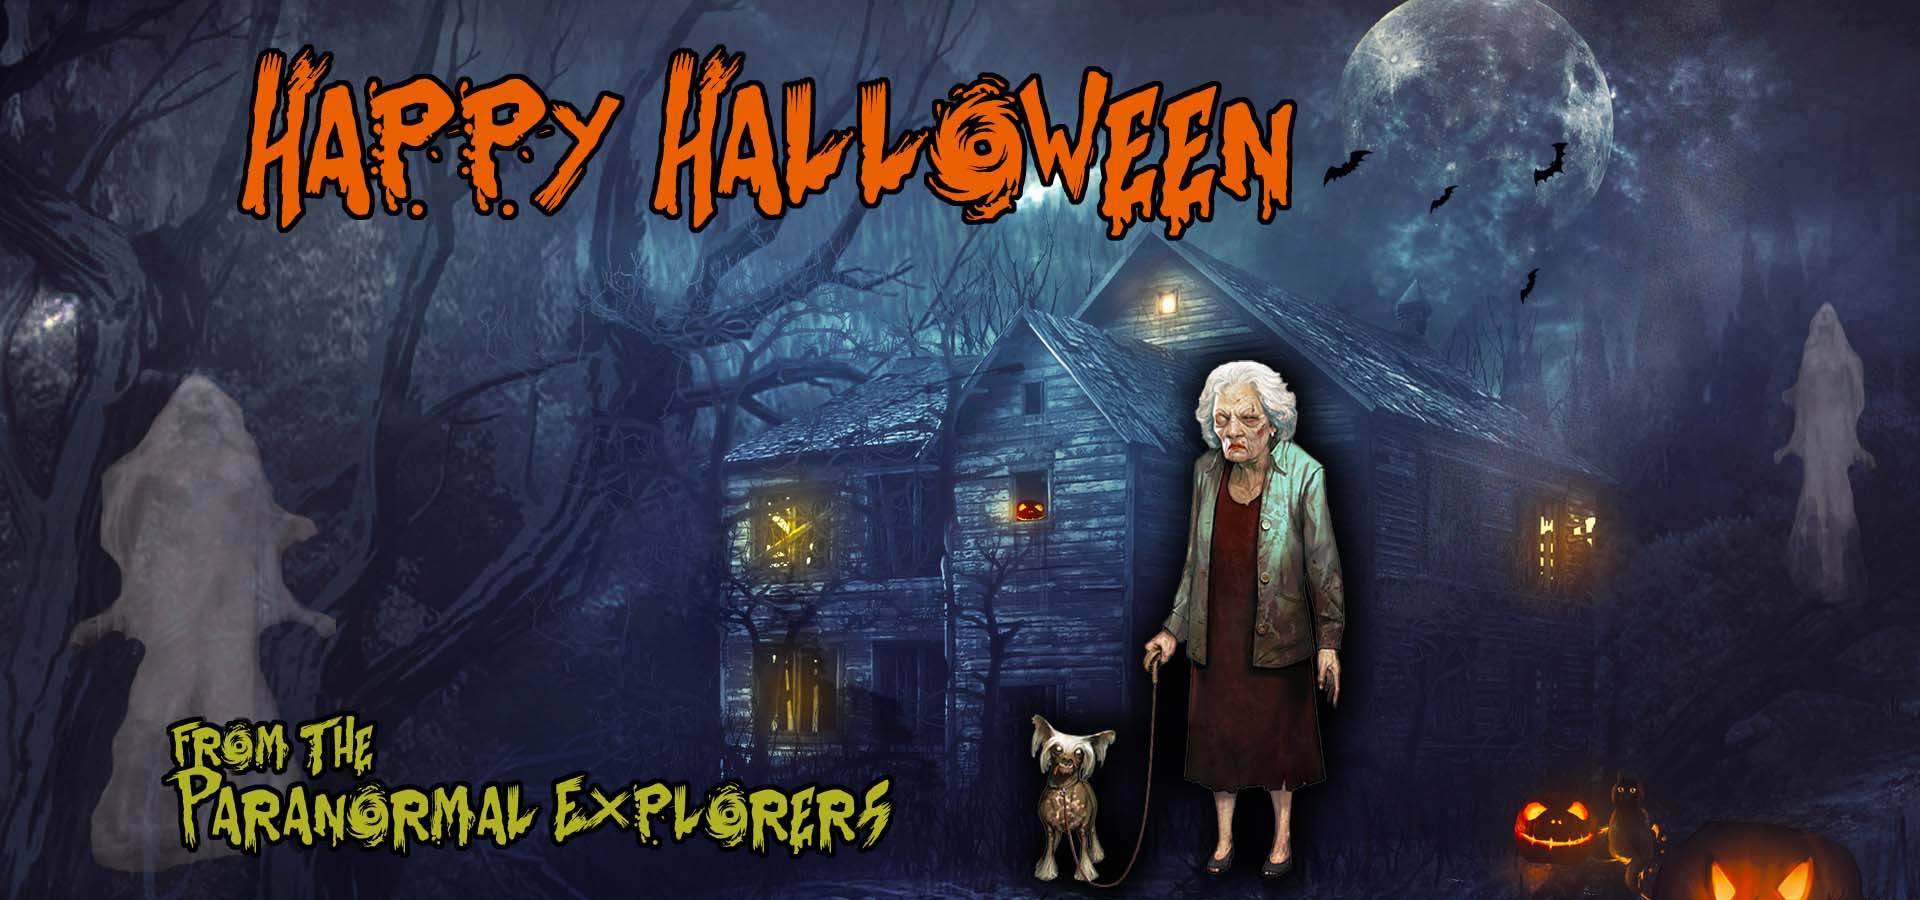 HappyHalloweenGreetings